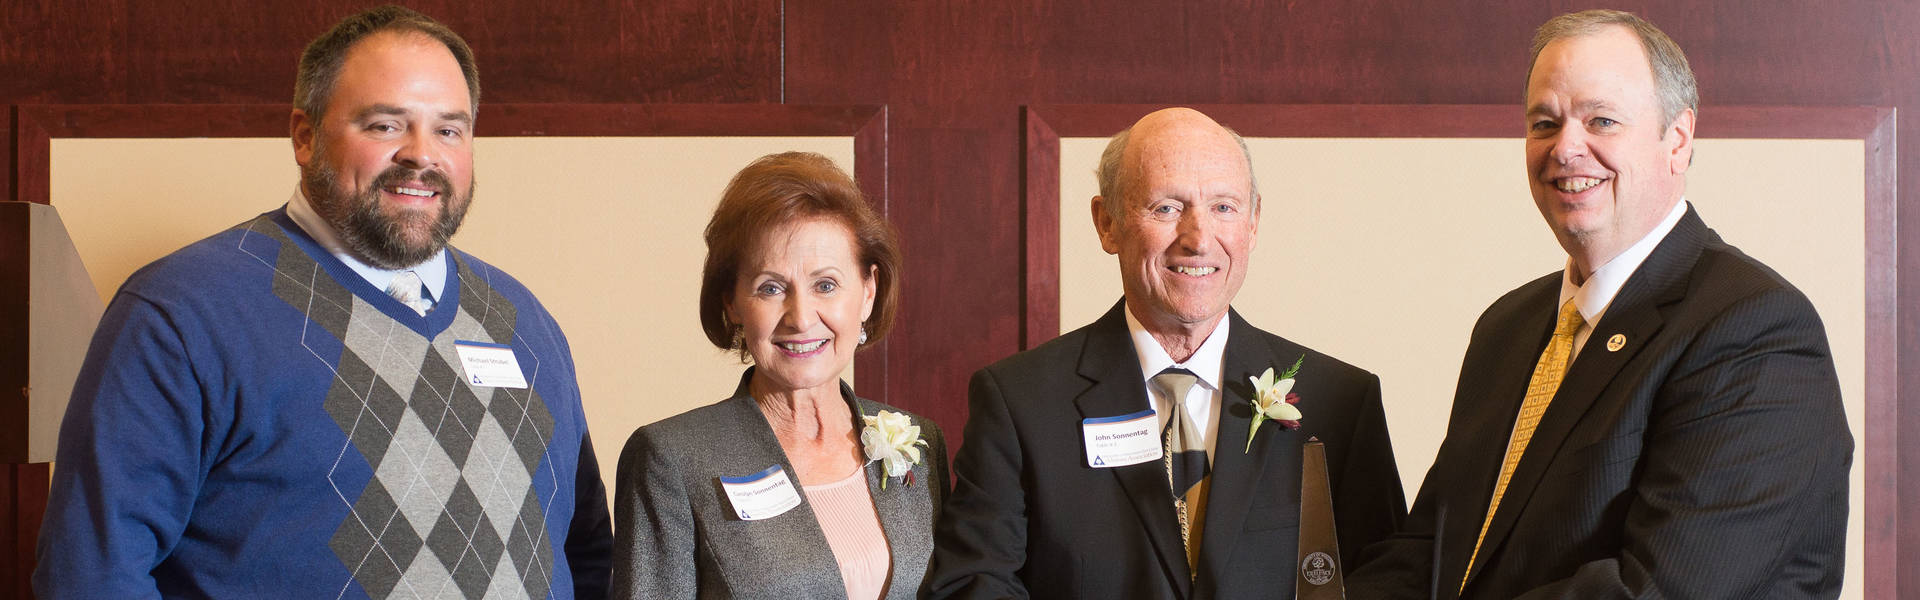 Then-UW-Eau Claire Alumni Board Chair Michael Strubel, left, and Chancellor Jim Schmidt present Carolyn ('67) and John Sonnentag ('66) with the Lifetime Excelllence Award.